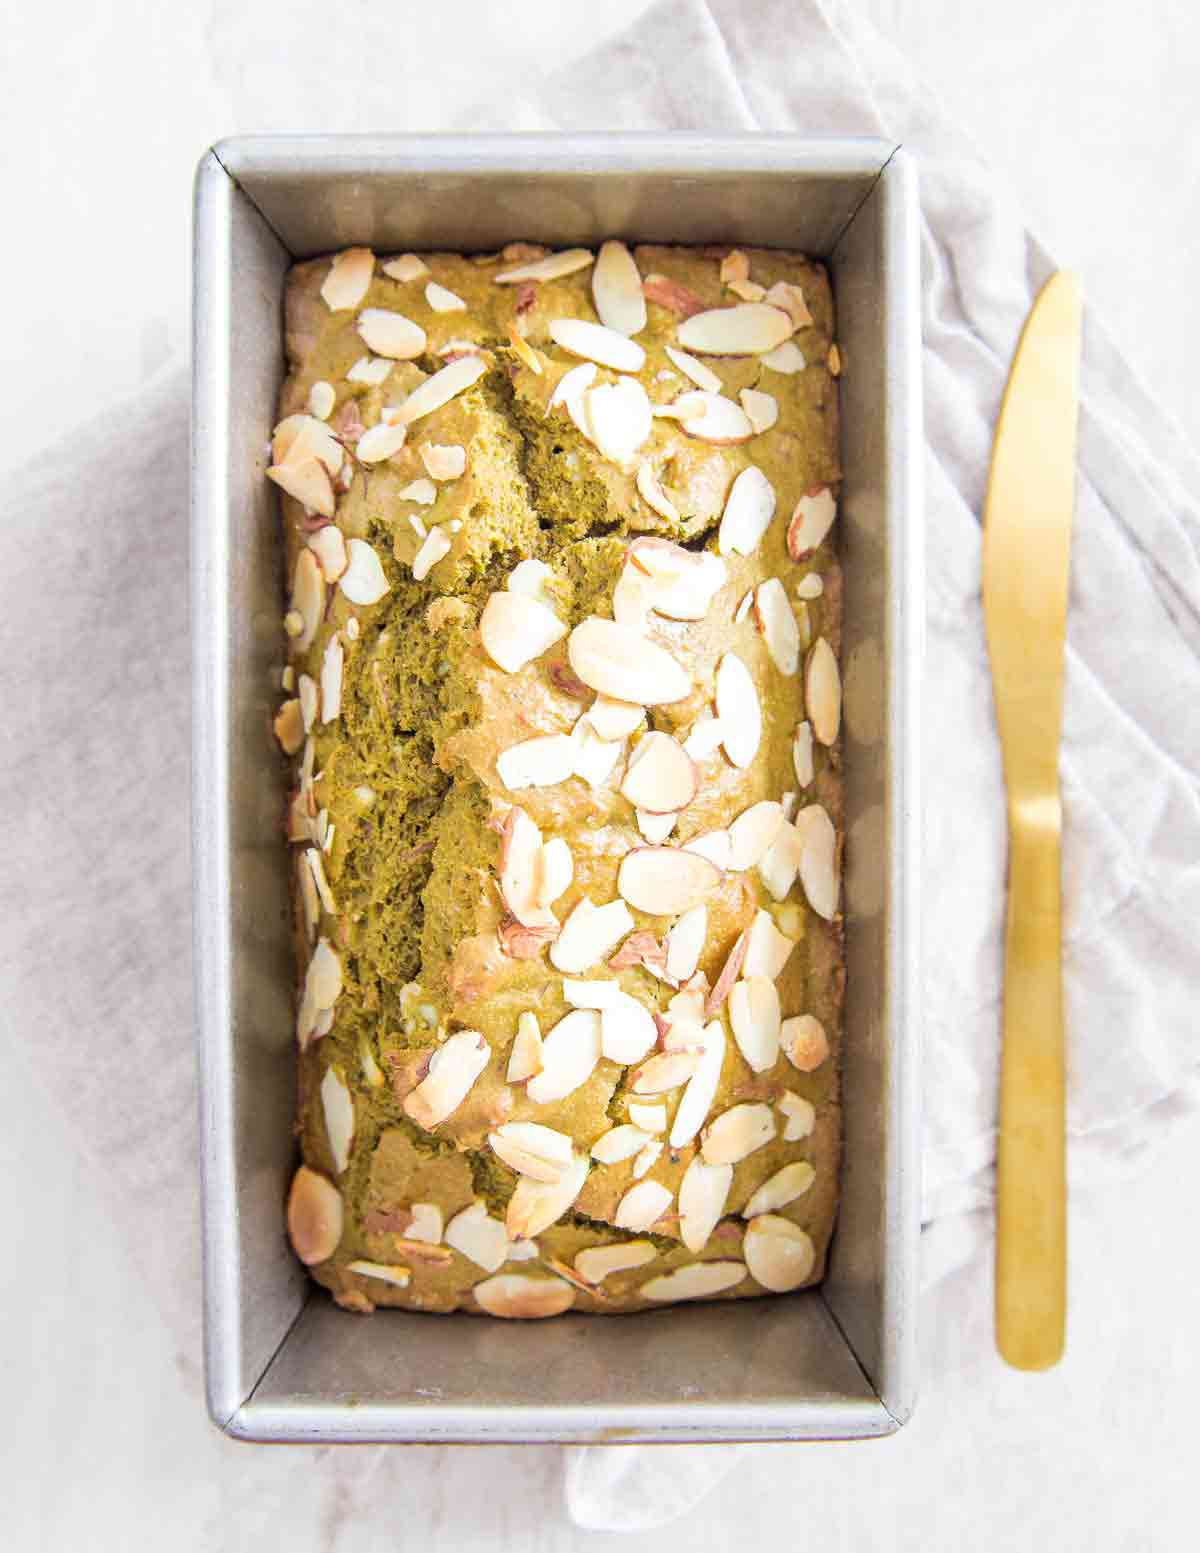 Matcha Bread with almonds is a delicious and easy quick bread recipe perfect for snacking, breakfast or dessert.